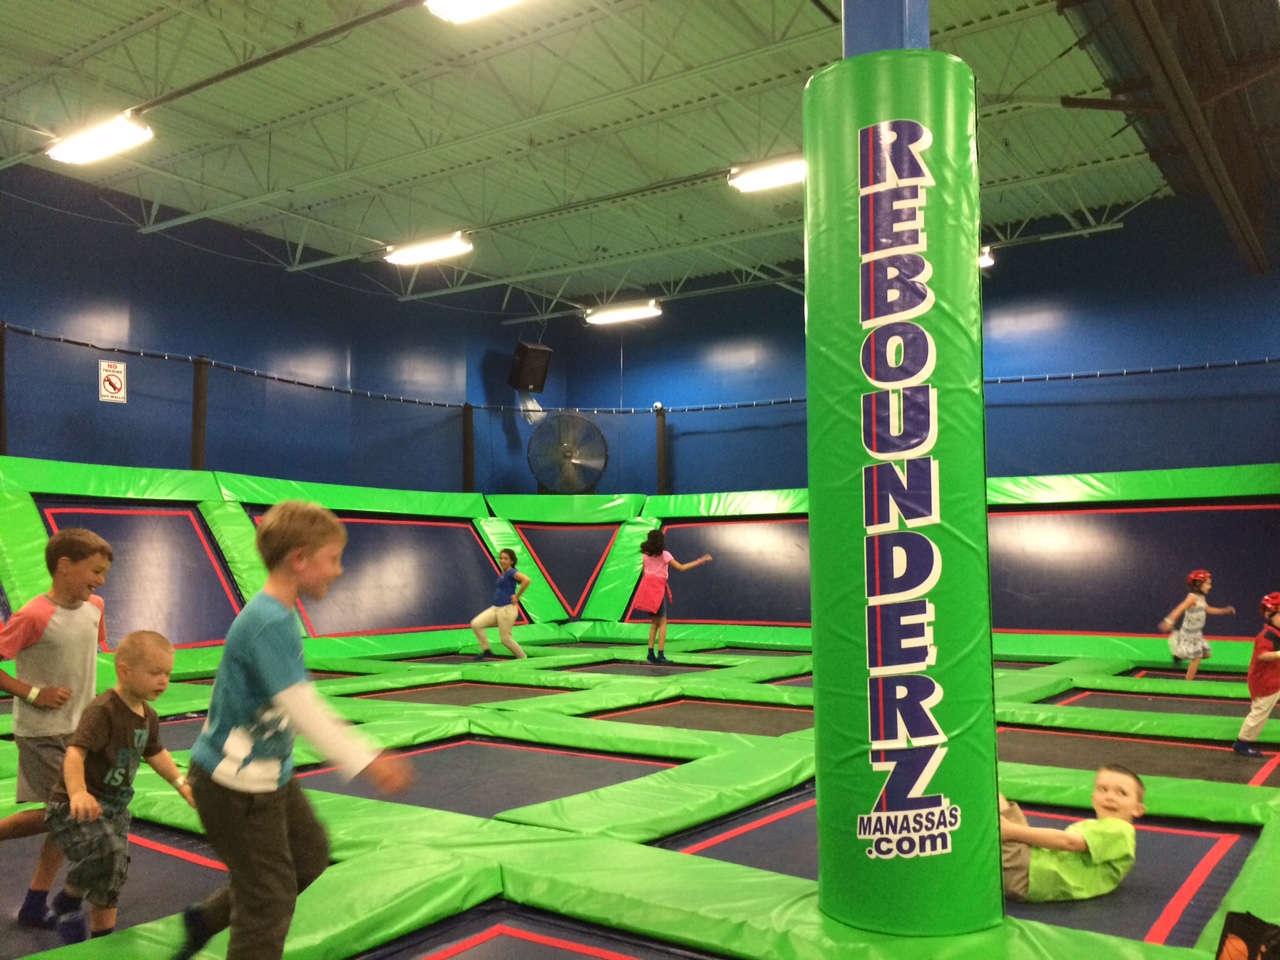 Rebounderz coupons